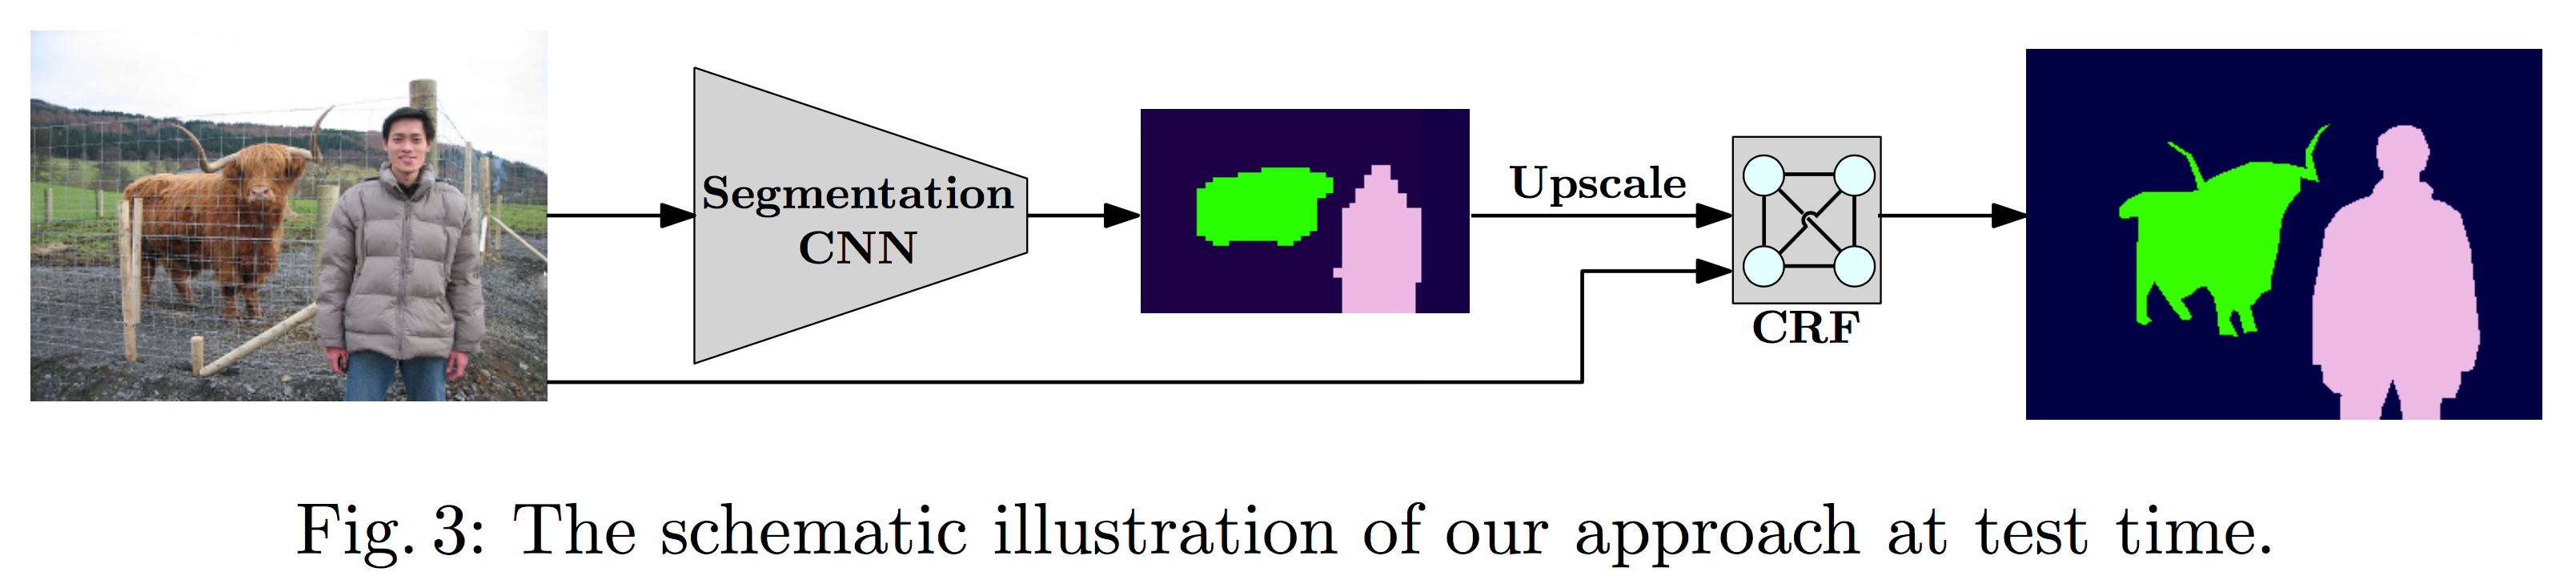 The schematic illustration of our approach at test time